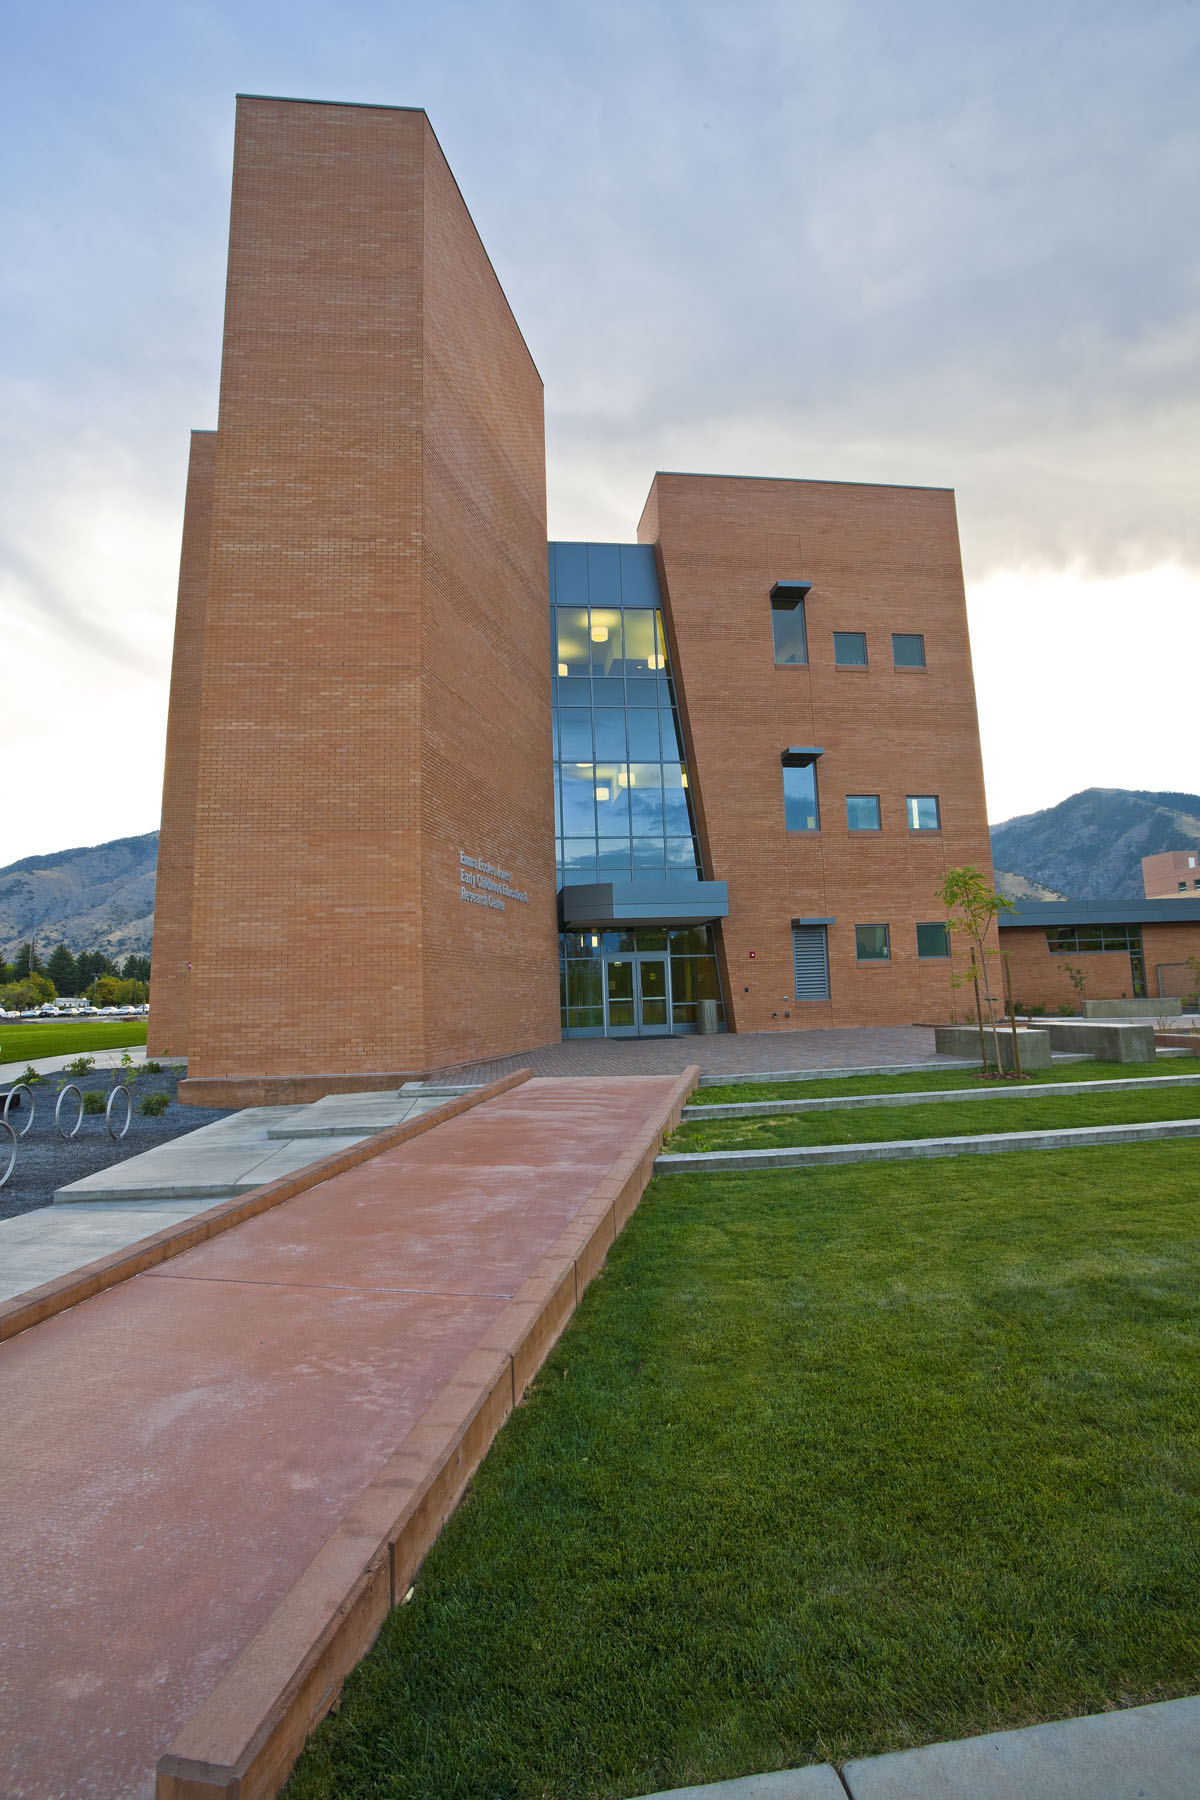 A red stone path cuts across a green lawn leading to the early childhood education building.